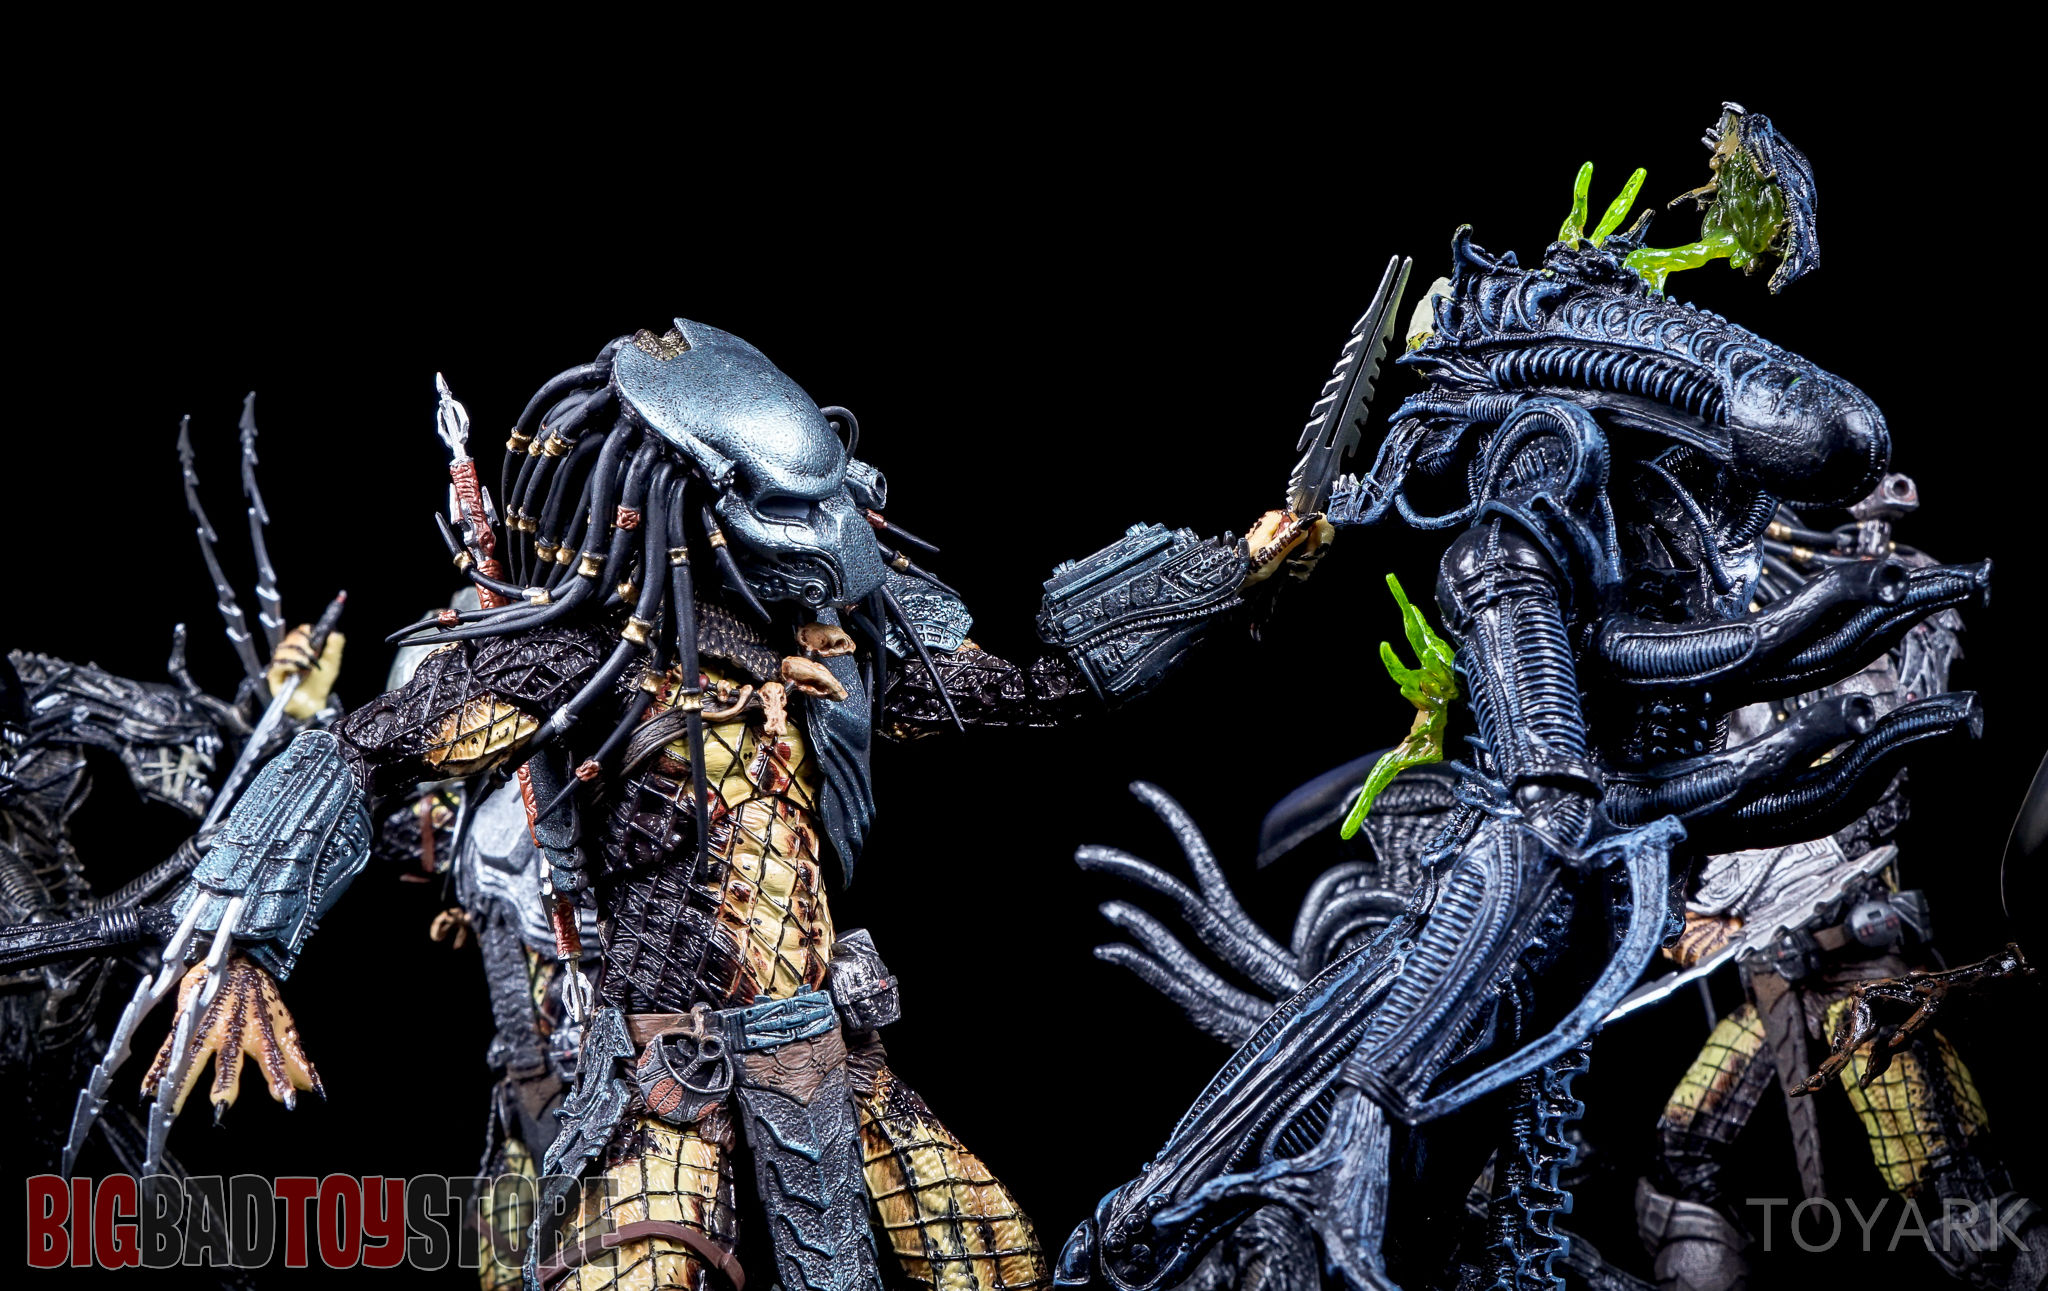 http://news.toyark.com/wp-content/uploads/sites/4/2016/05/NECA-Predator-Series-15-AvP-077.jpg